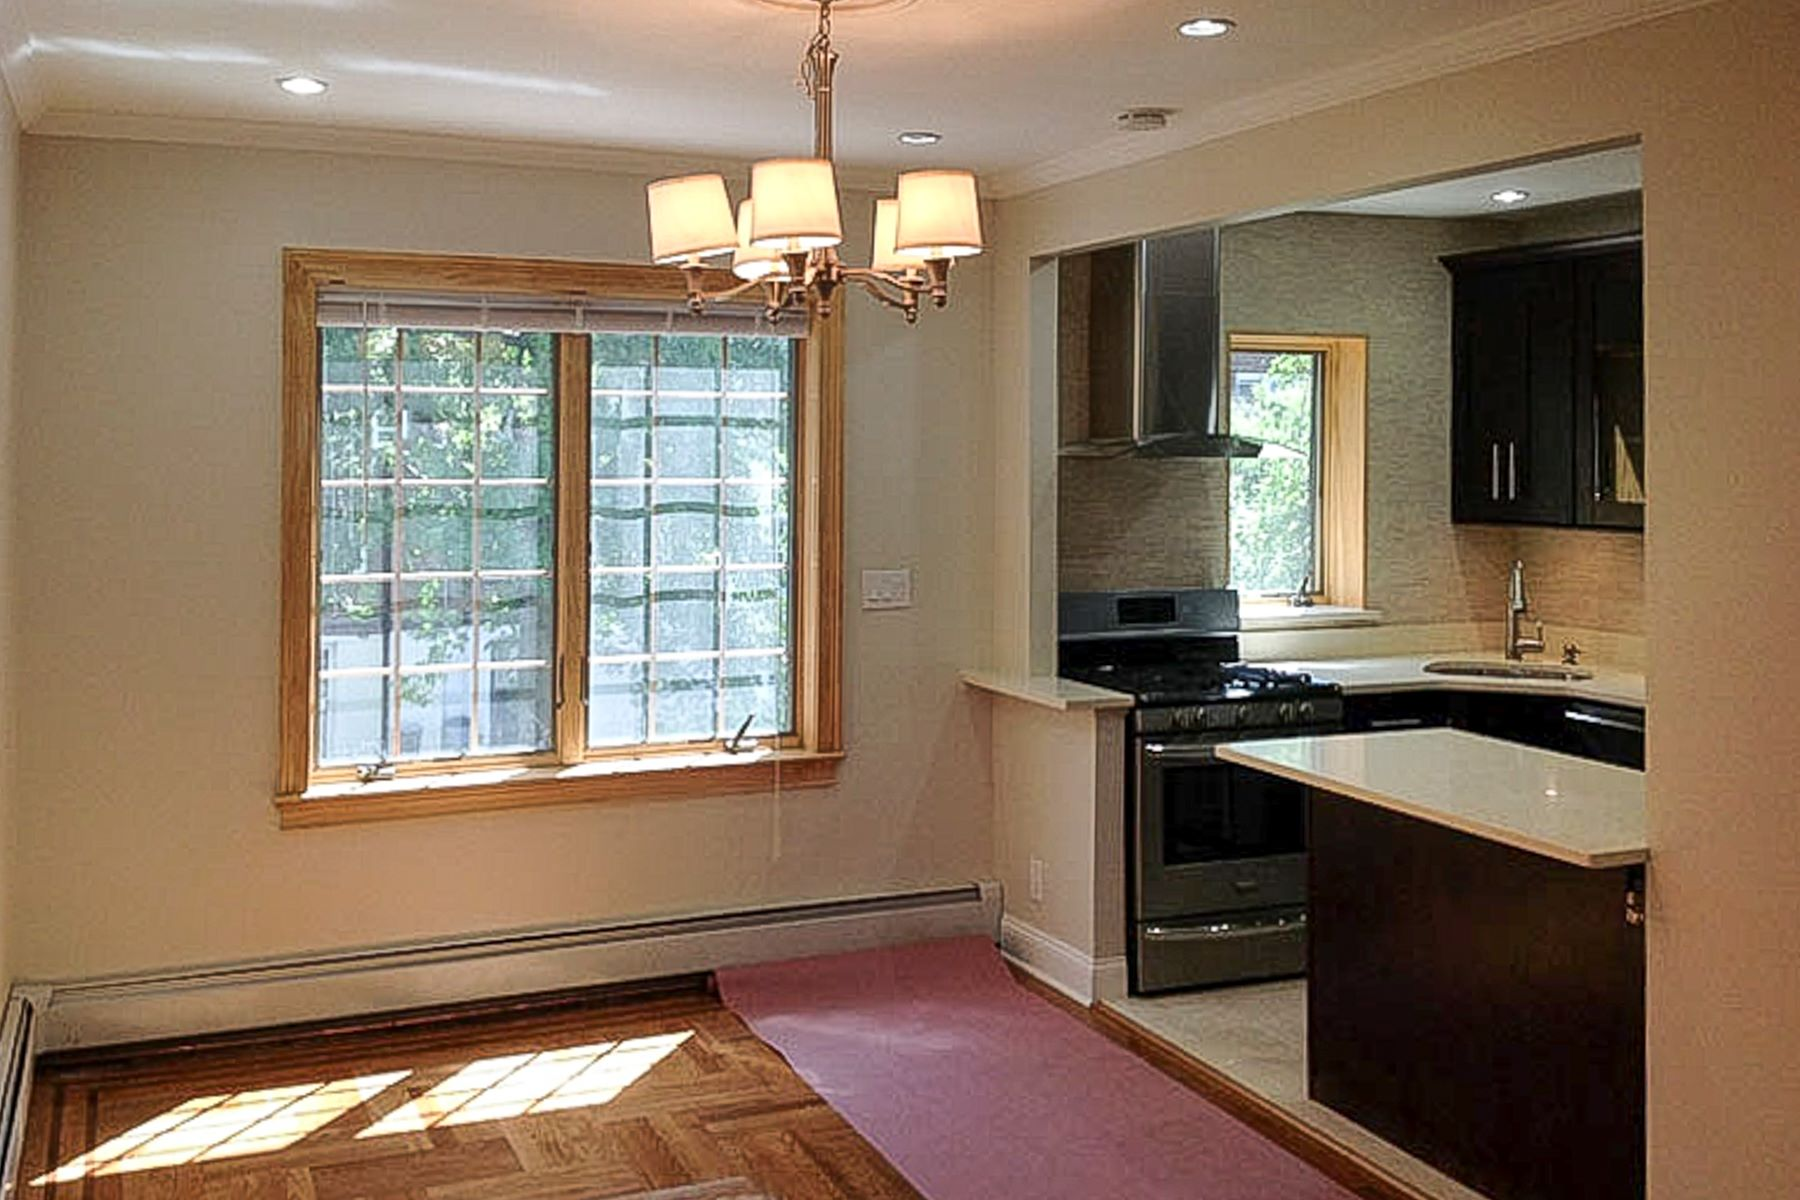 """Additional photo for property listing at """"SPARKLING TOWNHOUSE RENOVATION"""" 68-32 Groton Street, Forest Hills, New York 11375 United States"""